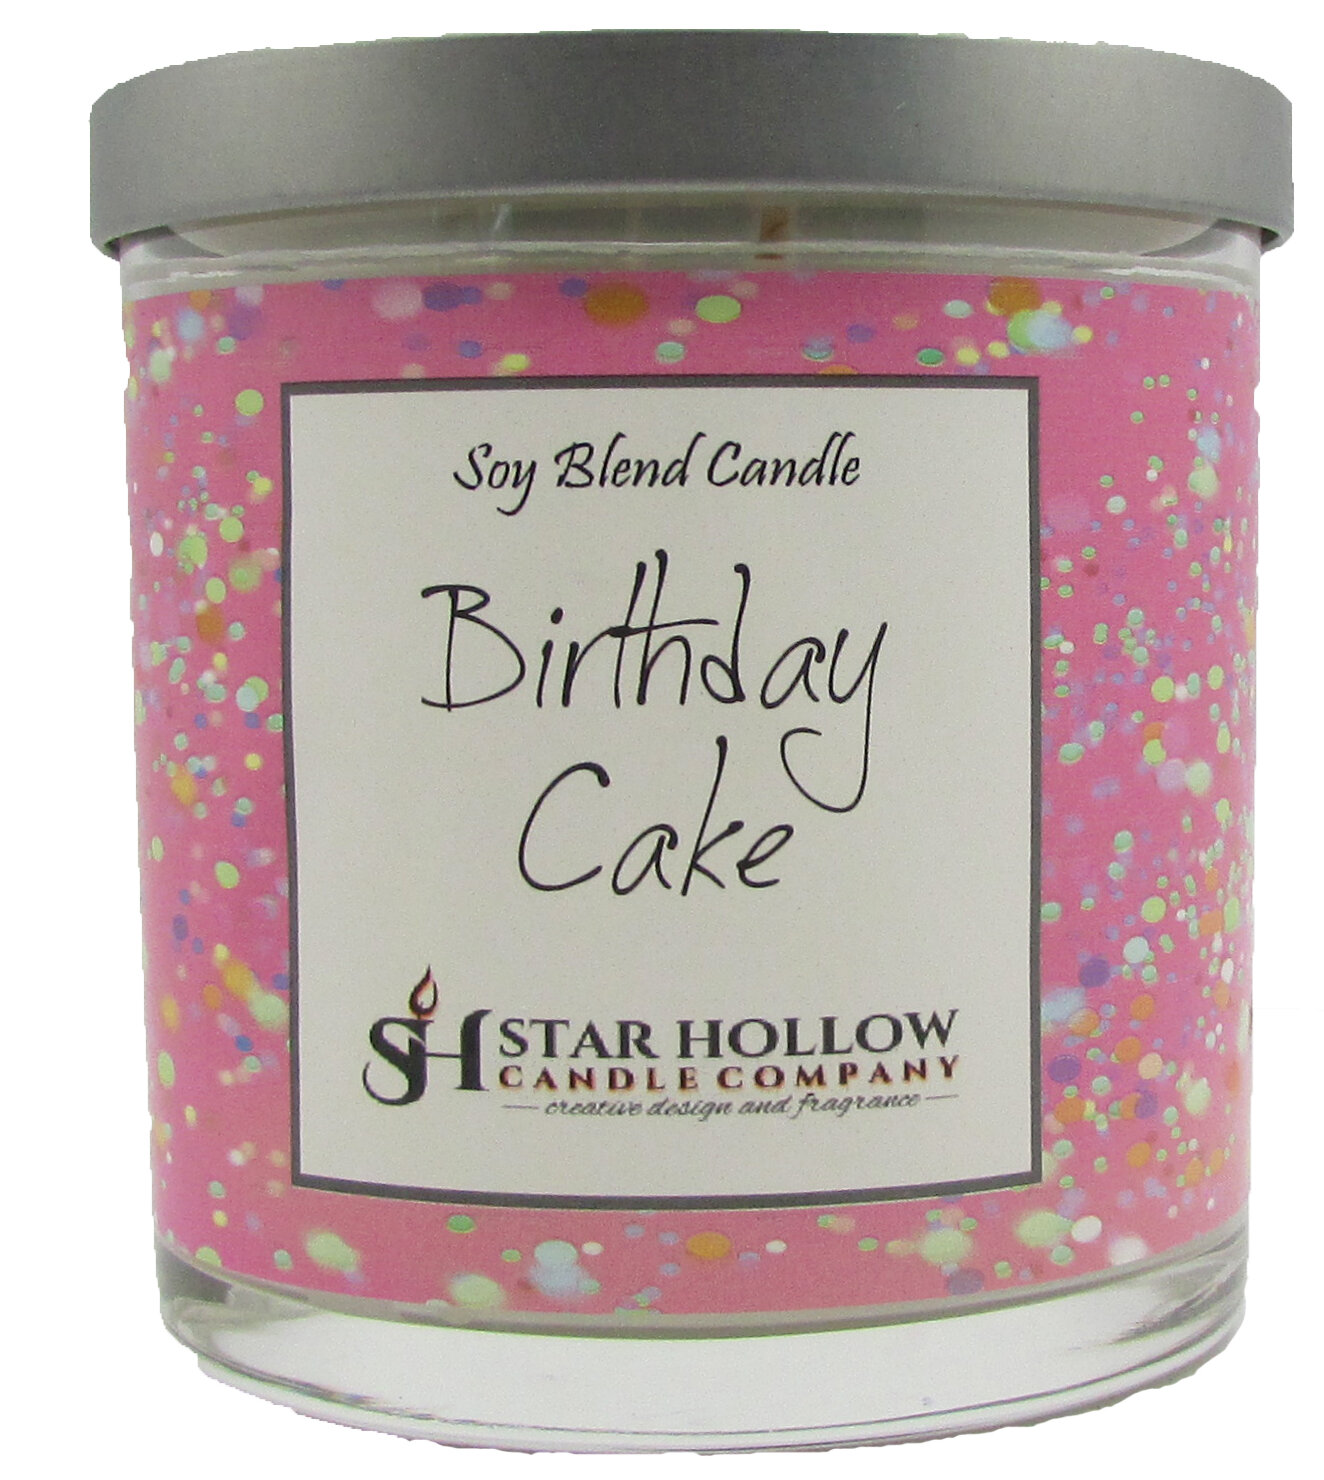 Strange Starhollowcandleco Birthday Cake Scented Jar Candle Wayfair Funny Birthday Cards Online Inifofree Goldxyz